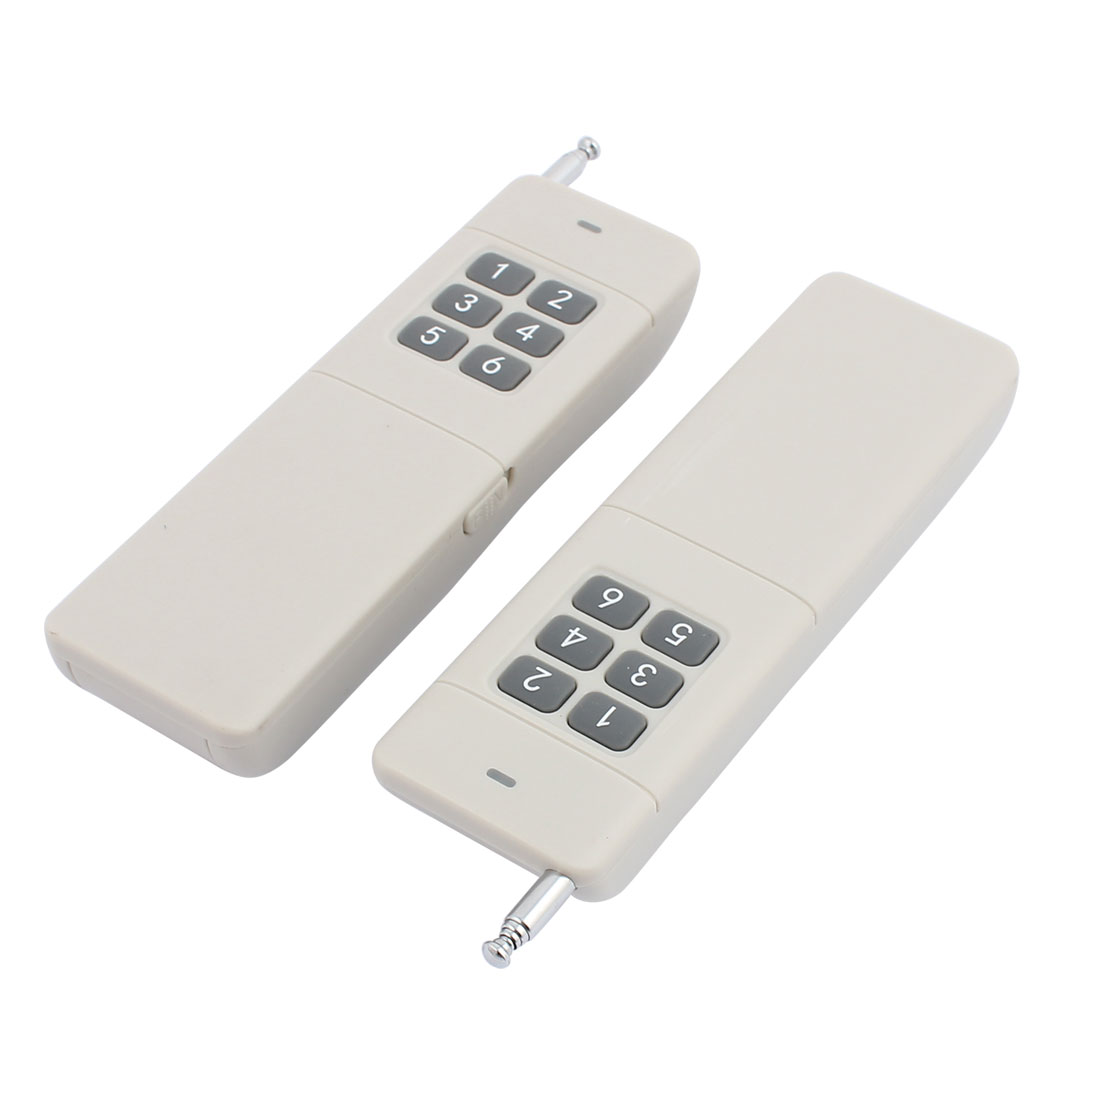 2pcs 3000M 6 Keys Battery Powered  Remote Controller for Water Pump - image 4 of 4